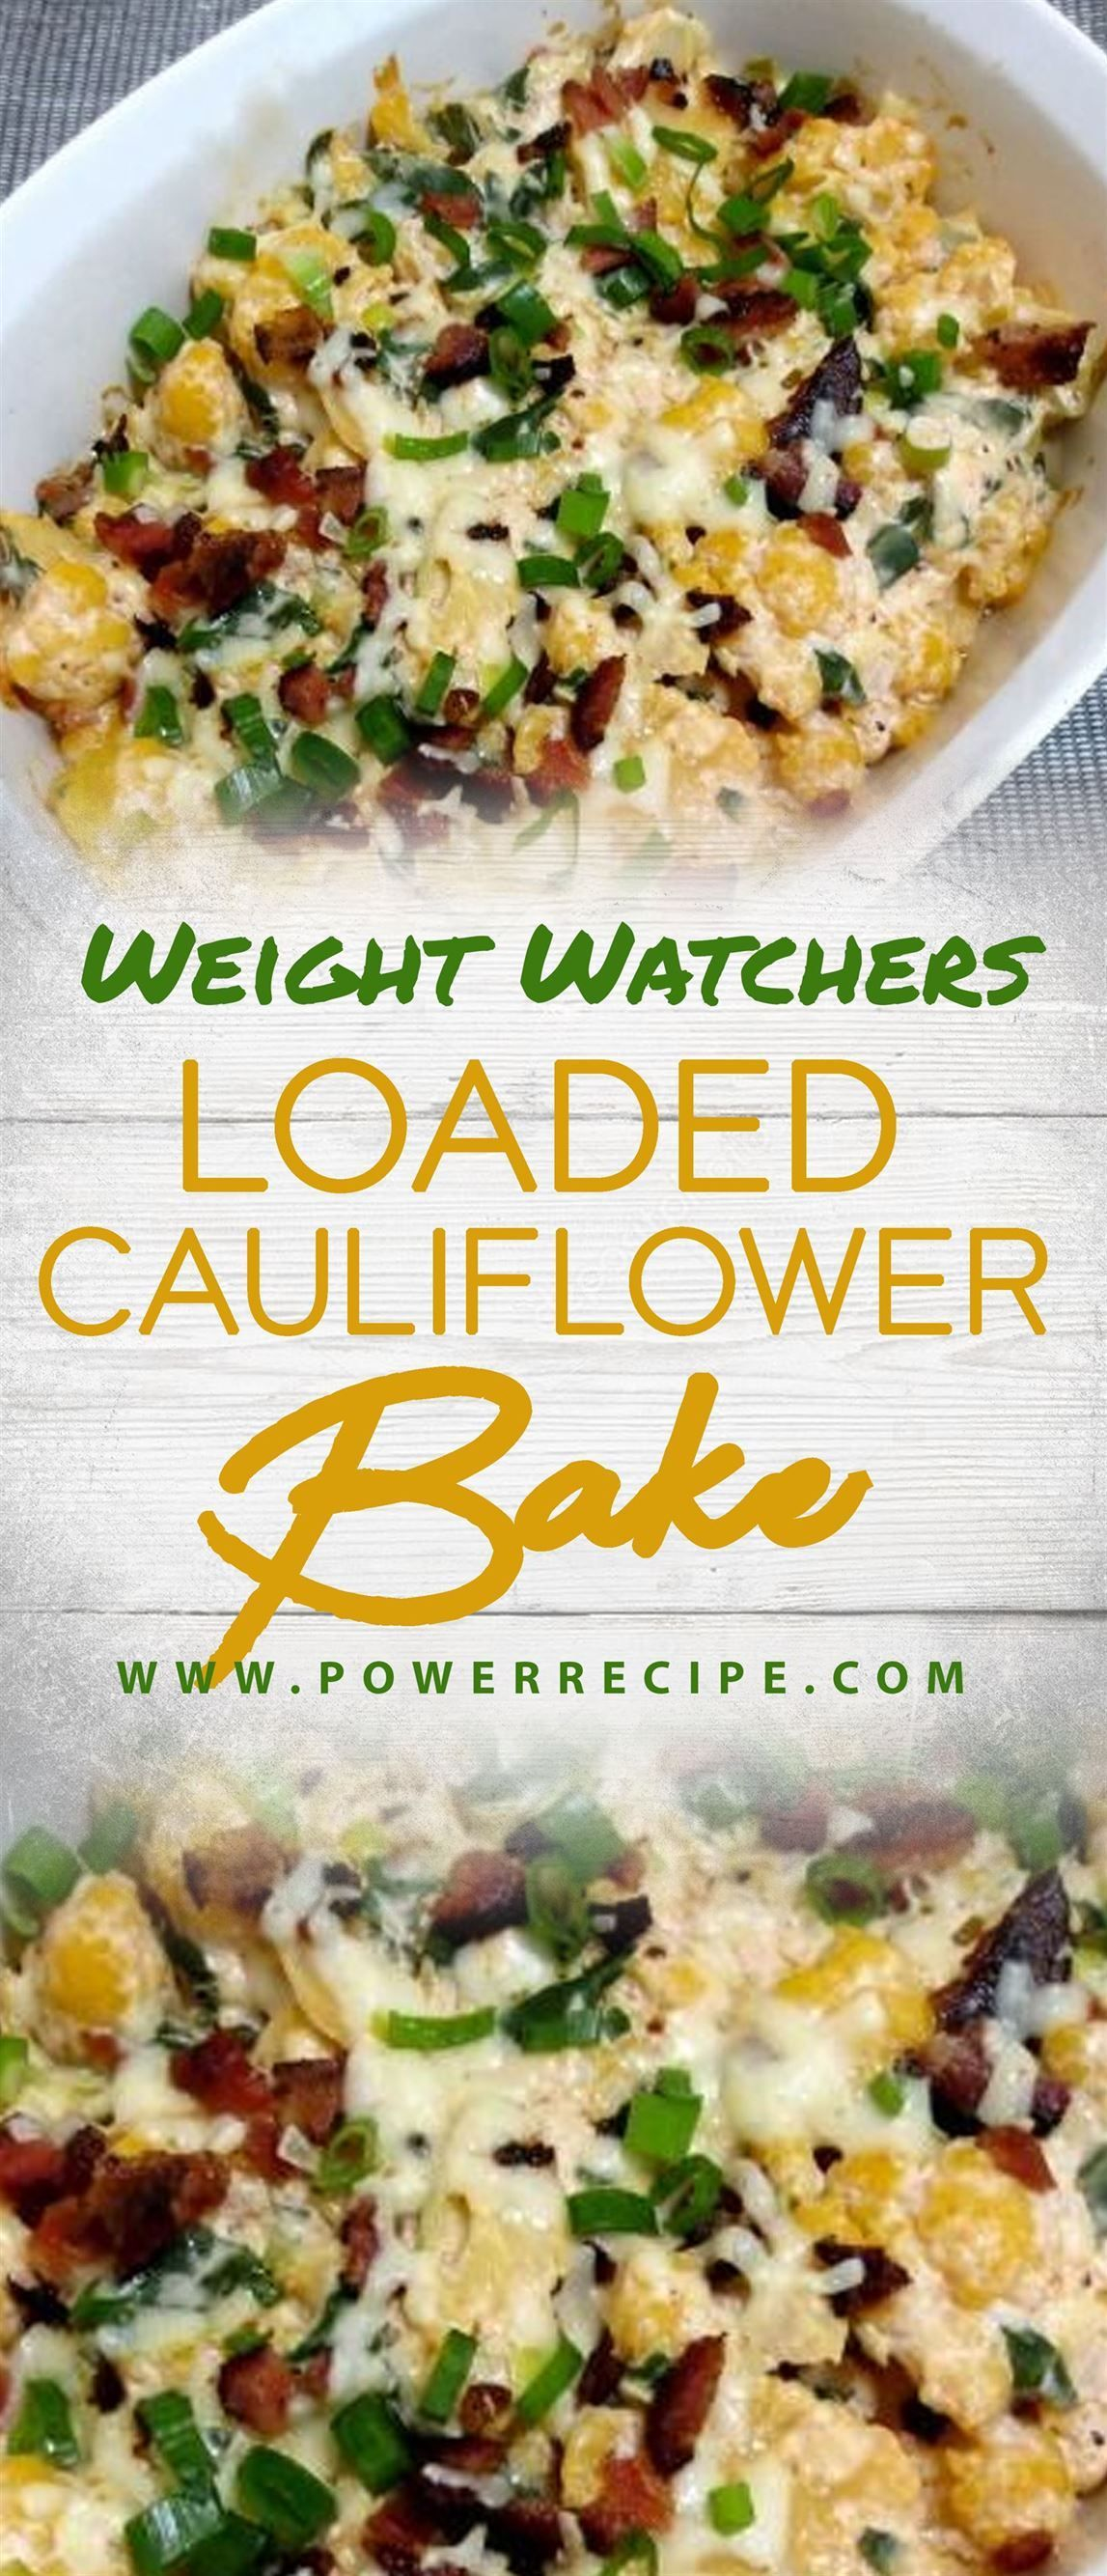 Weight Watchers Loaded Cauliflower Bake!!! - All about Your Power Recipes #loadedcauliflowerbake